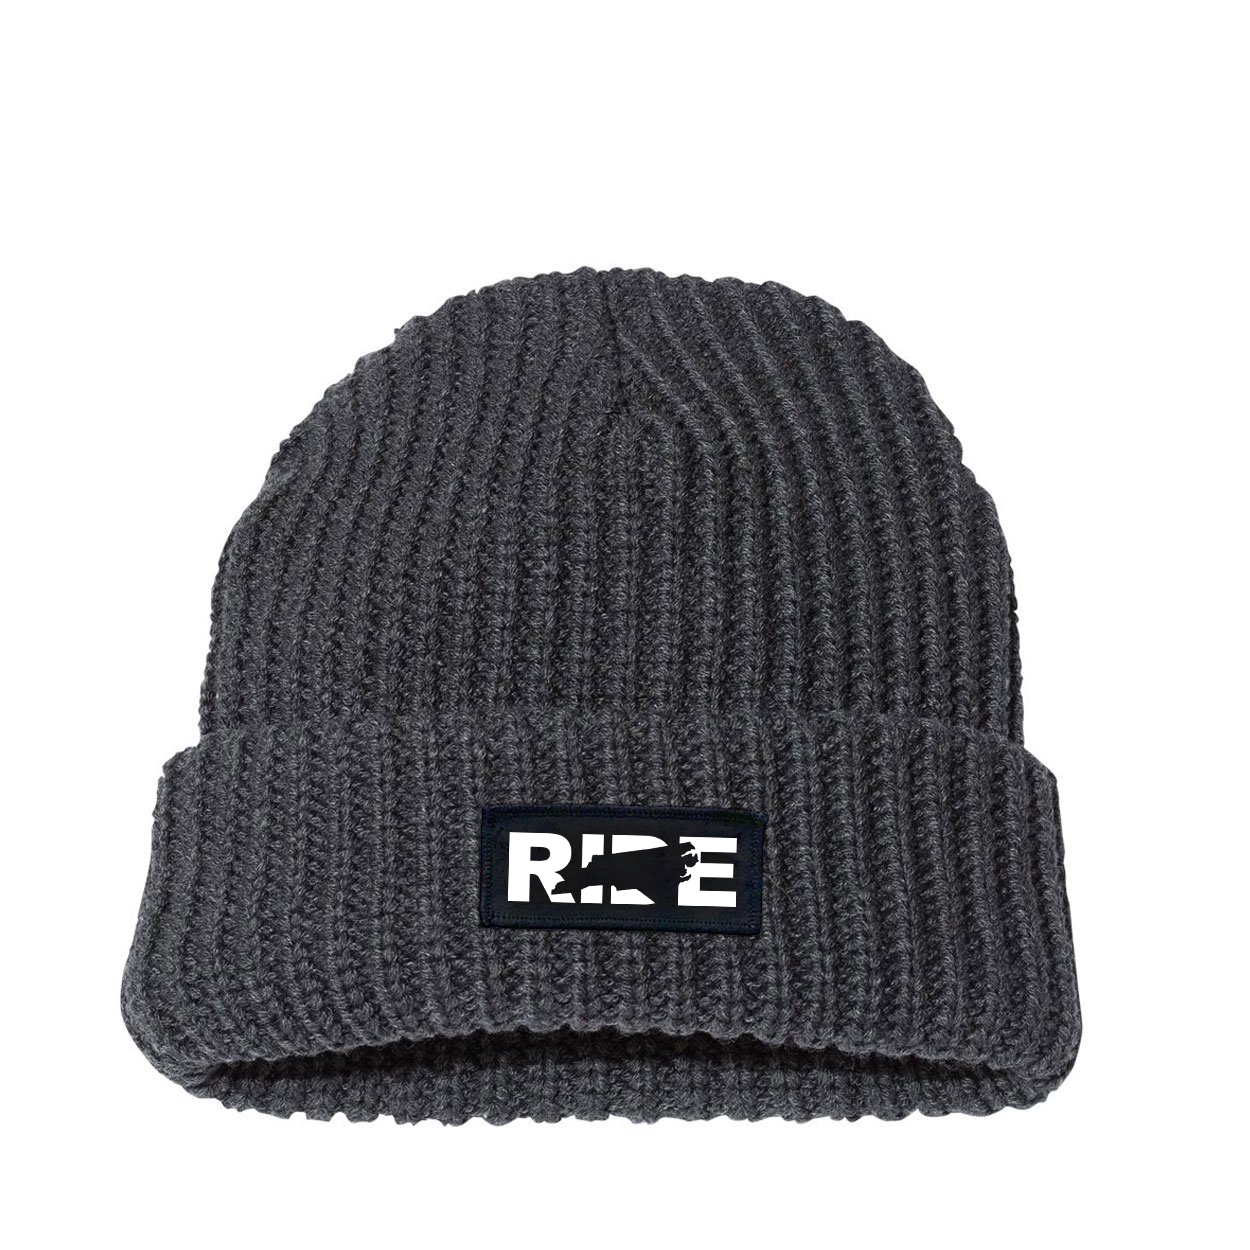 Ride North Carolina Night Out Woven Patch Roll Up Jumbo Chunky Knit Beanie Charcoal (White Logo)